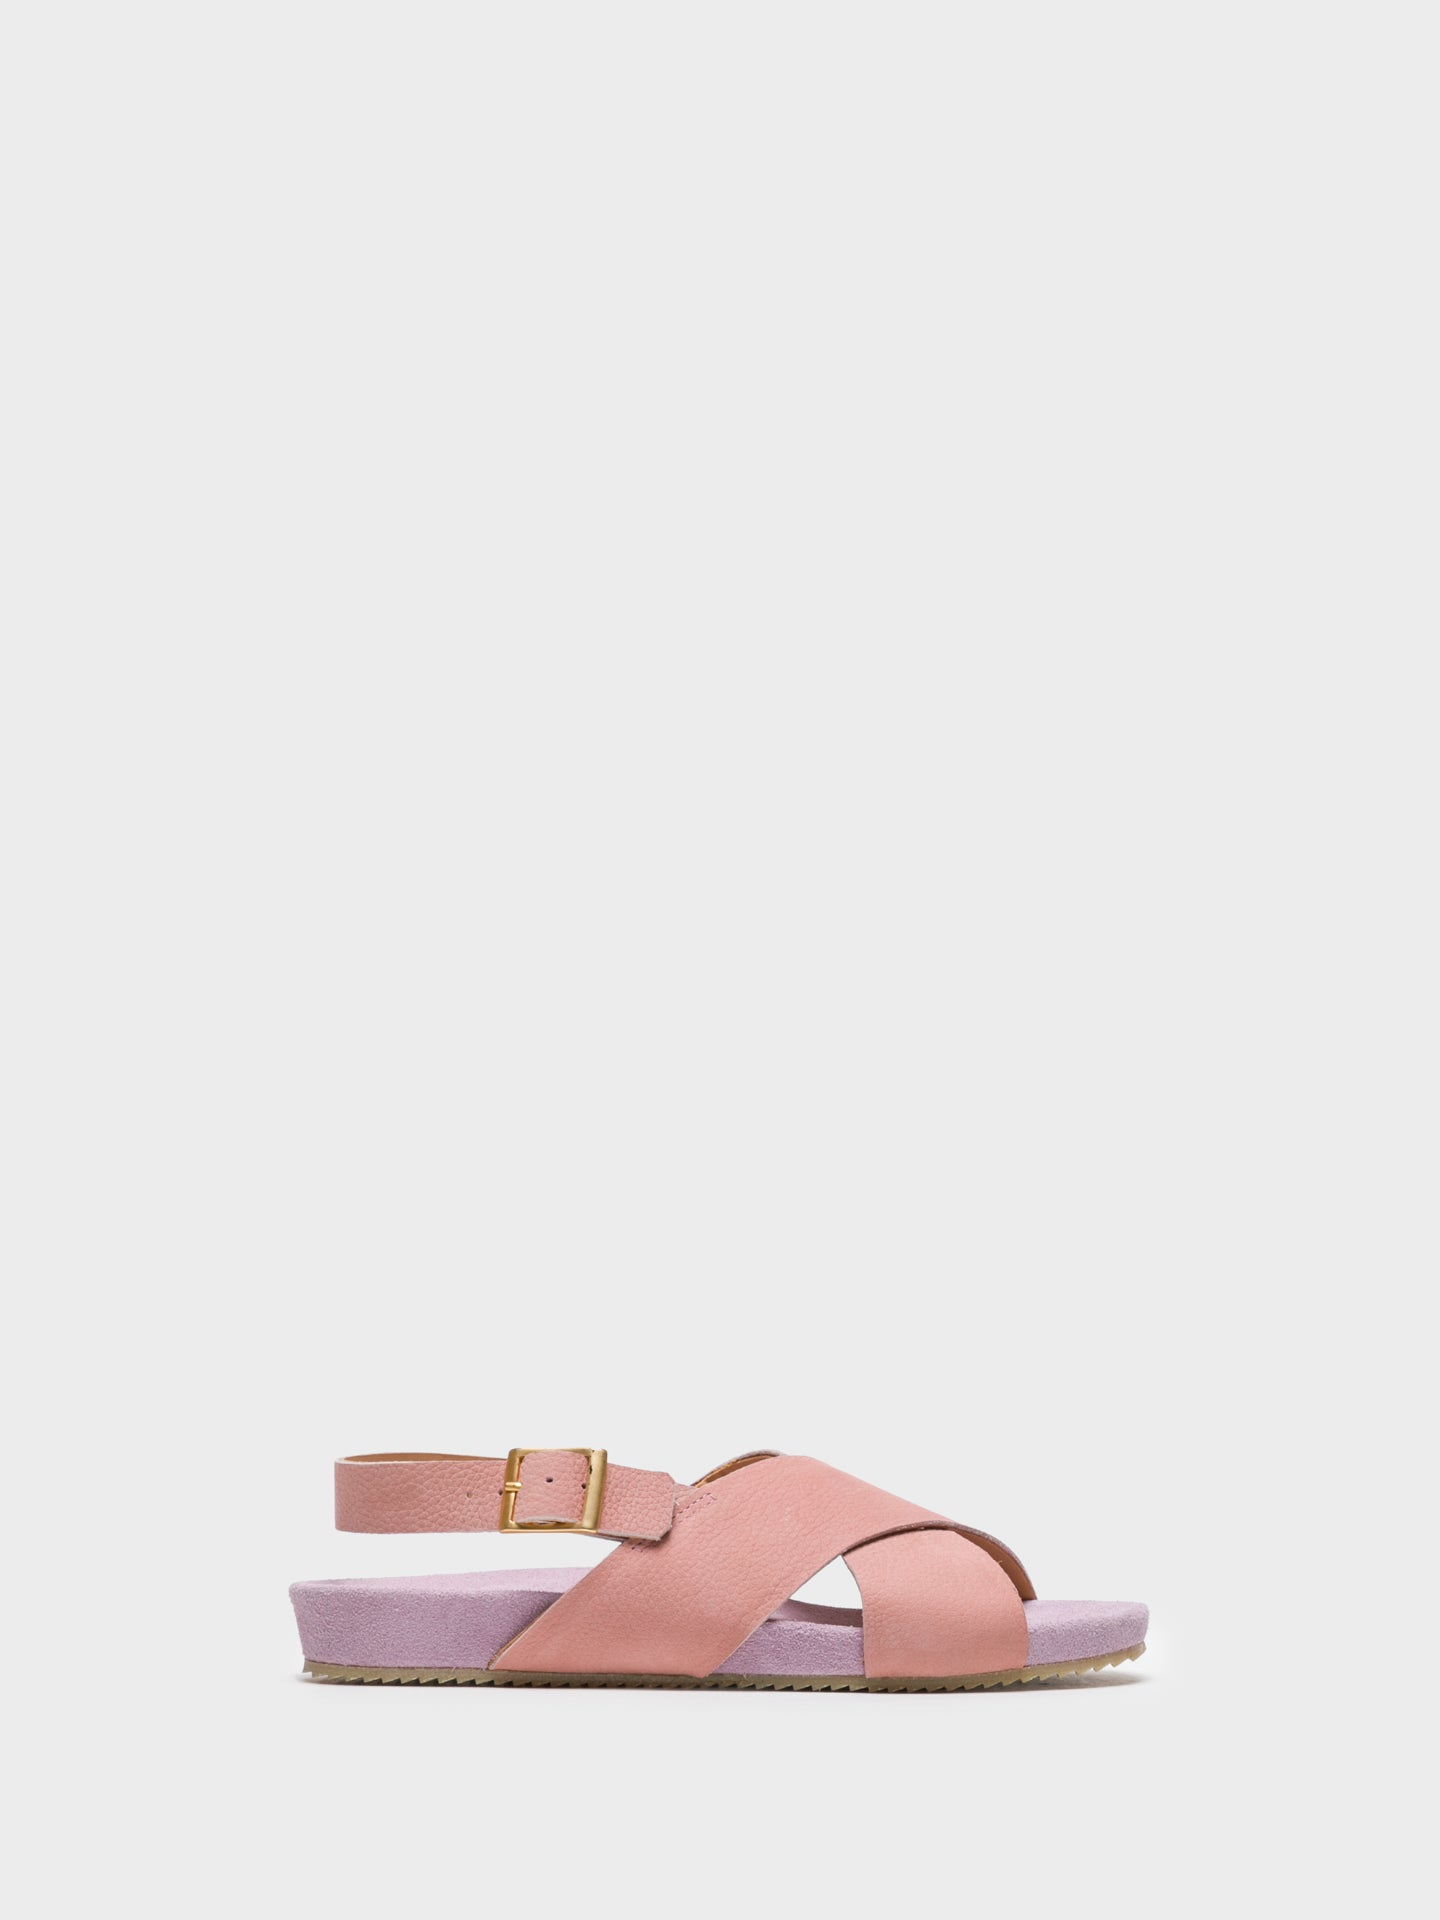 Only2me Pink Buckle Sandals